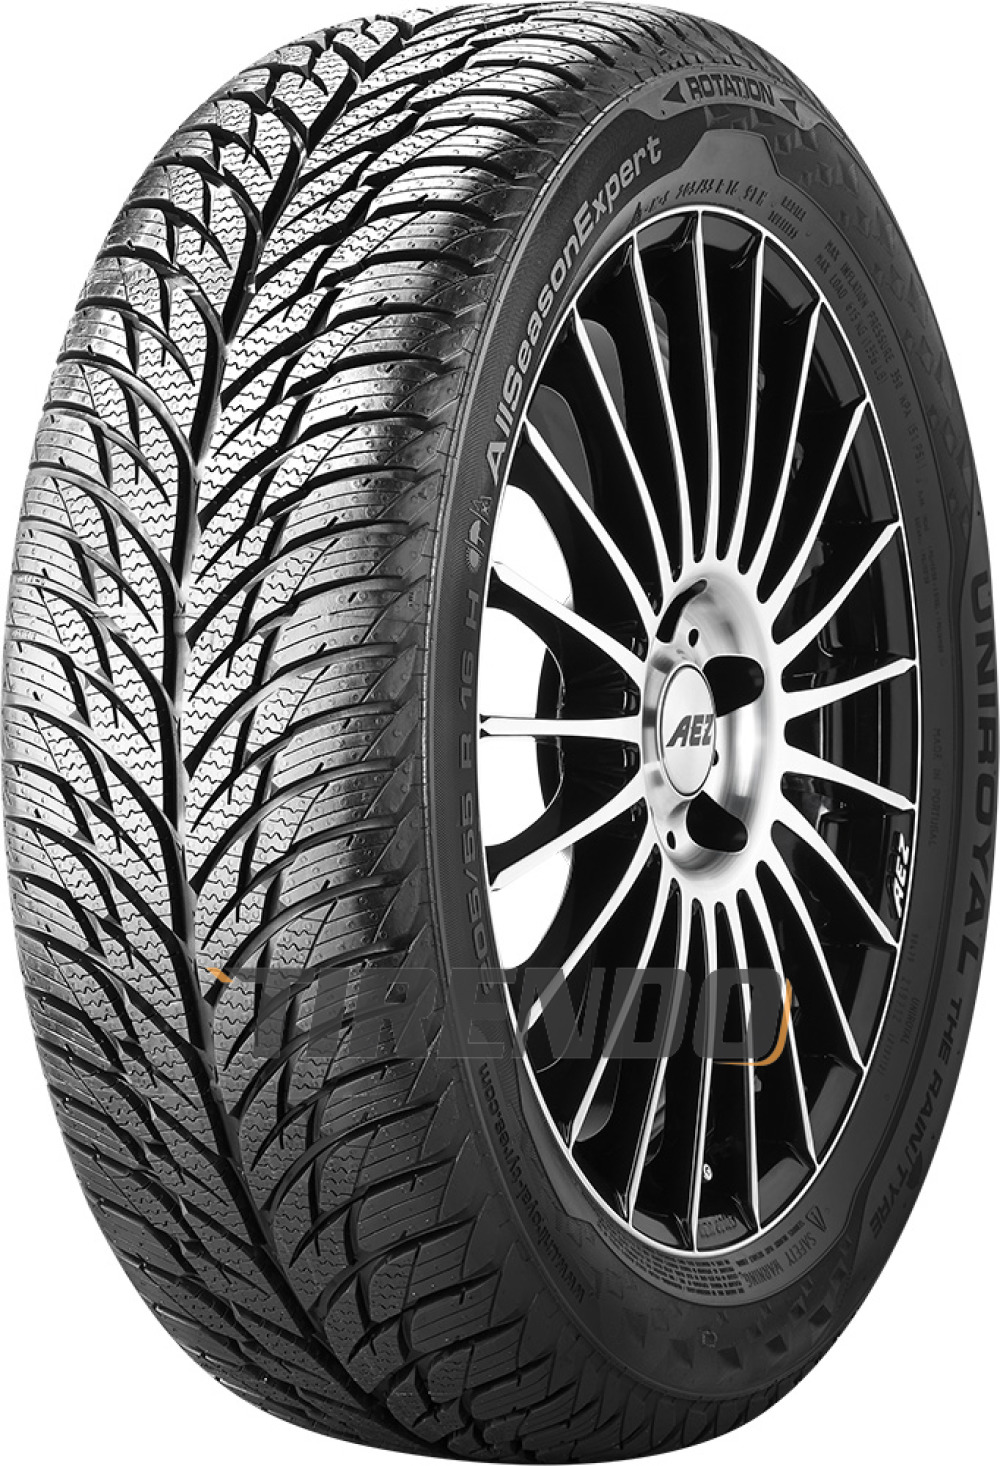 Uniroyal All Season Expert ( 155/80 R13 79T )